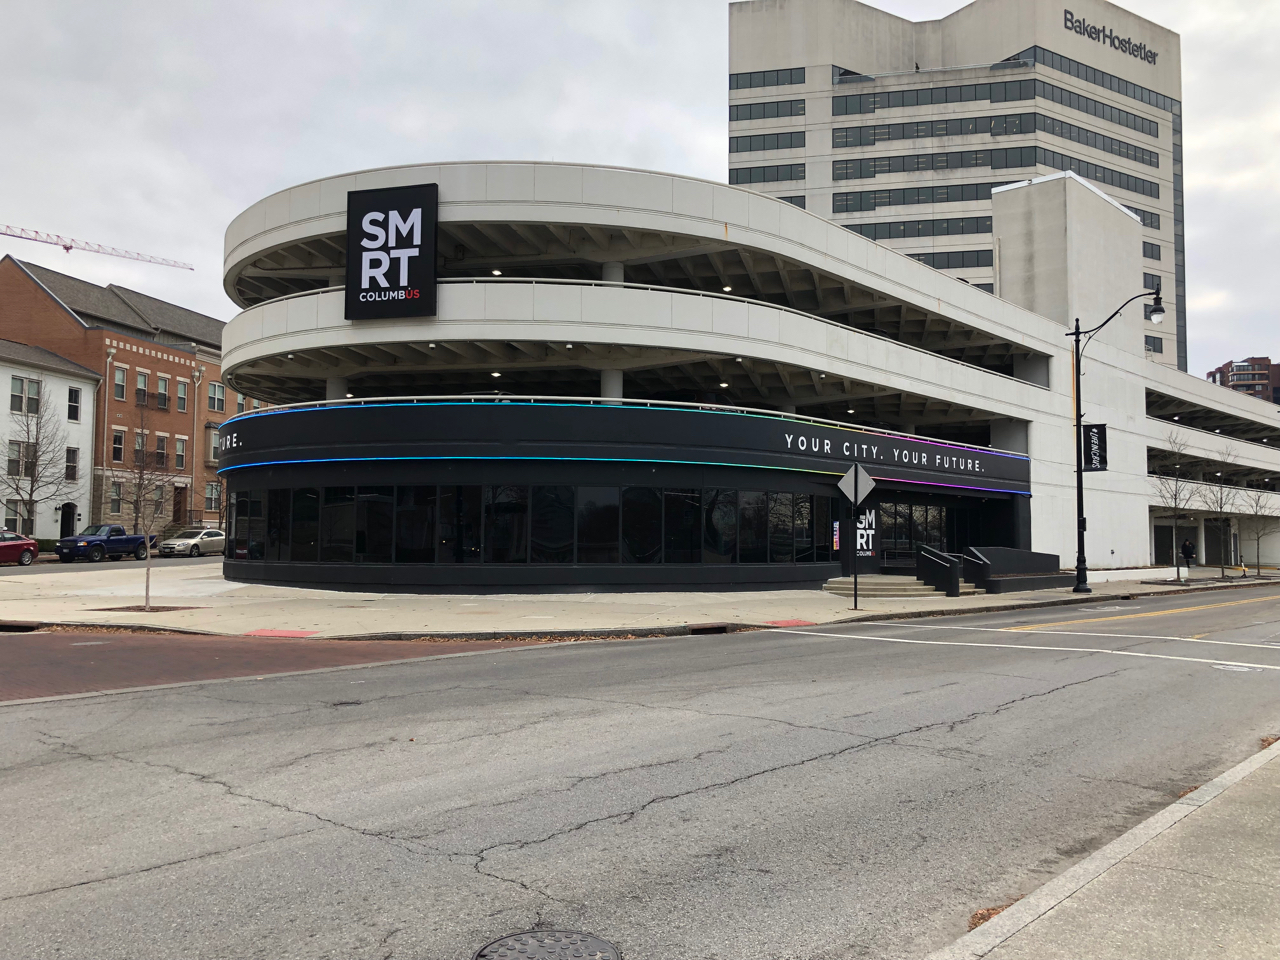 smart columbus experience center building